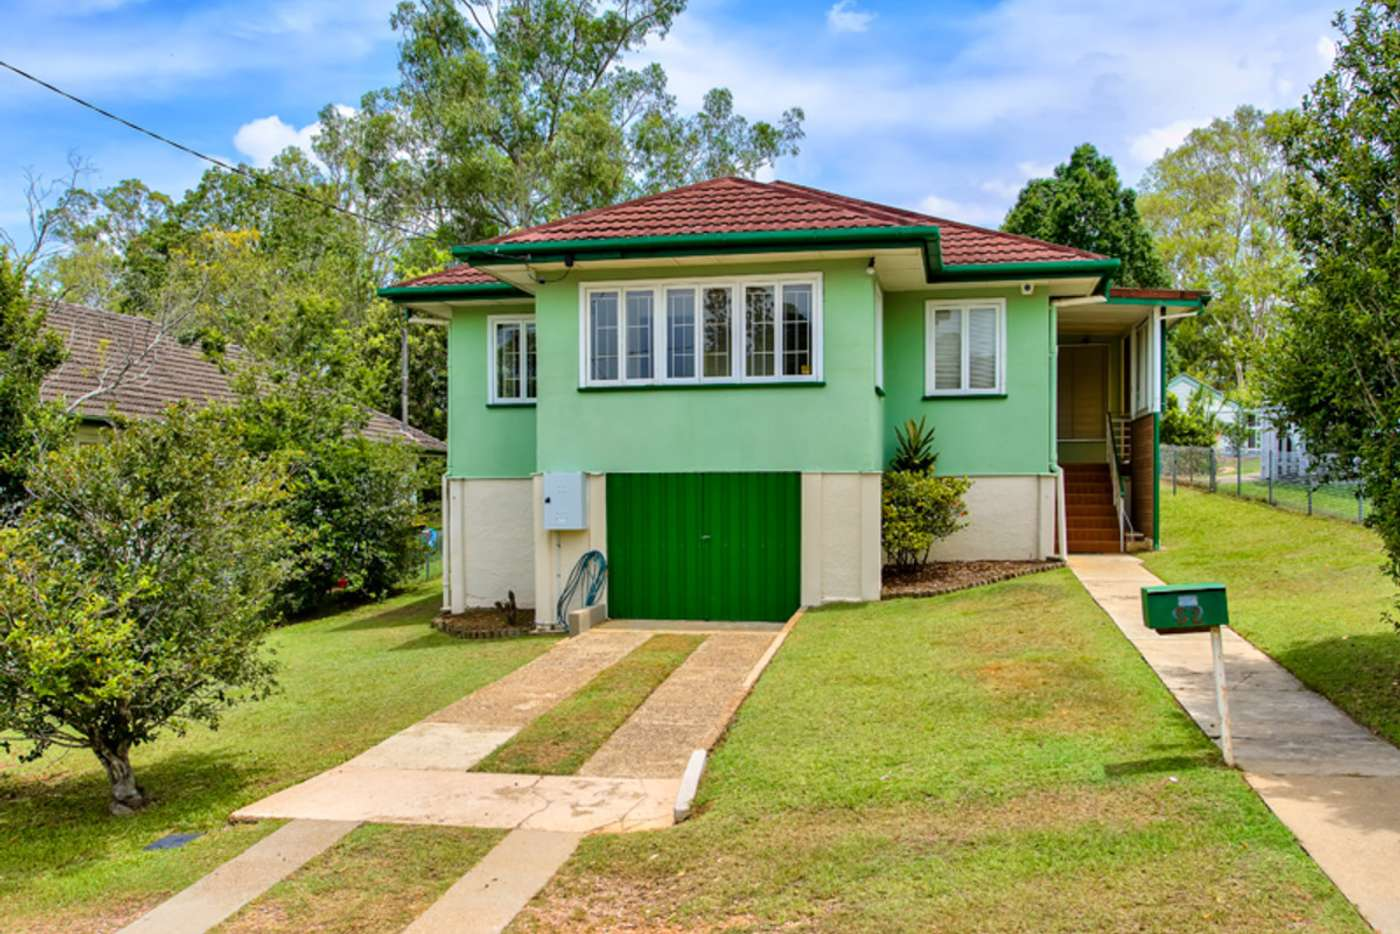 Main view of Homely house listing, 52 Pateena Street, Stafford QLD 4053